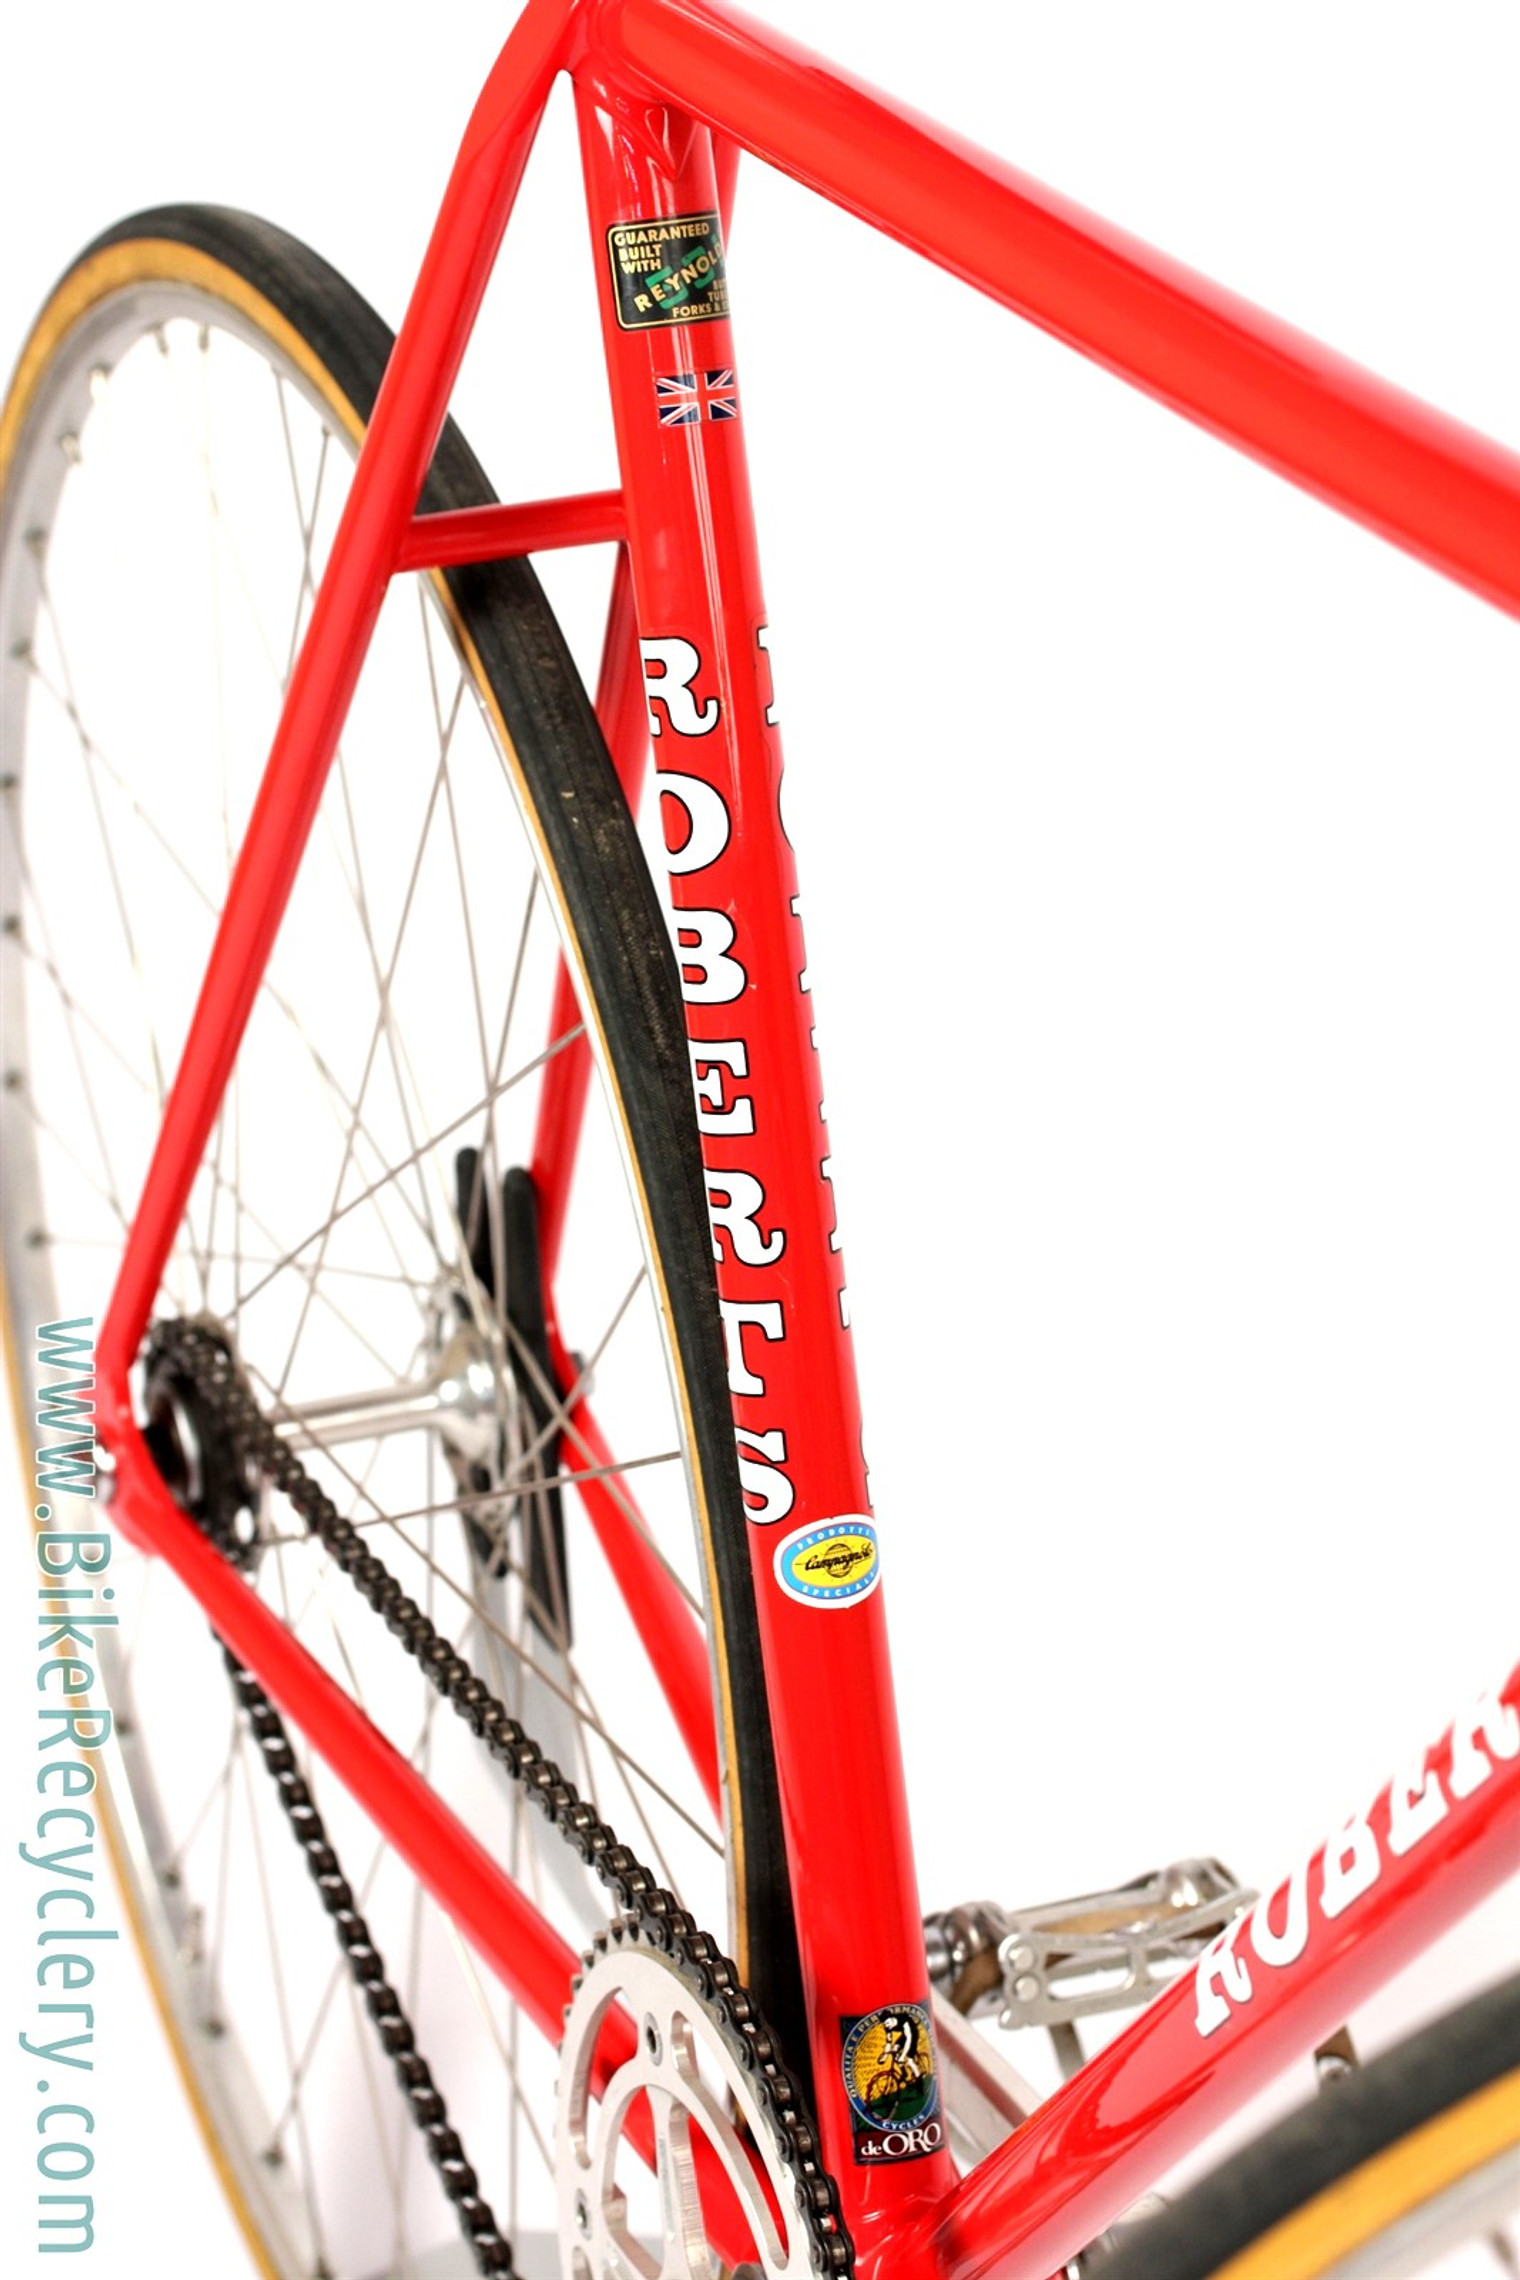 Chas Roberts Track Bike: 55cm - FULL Campagnolo Record - Reynolds 531 - Rare Unicantor - 1980's - Original Paint (Show Condition)